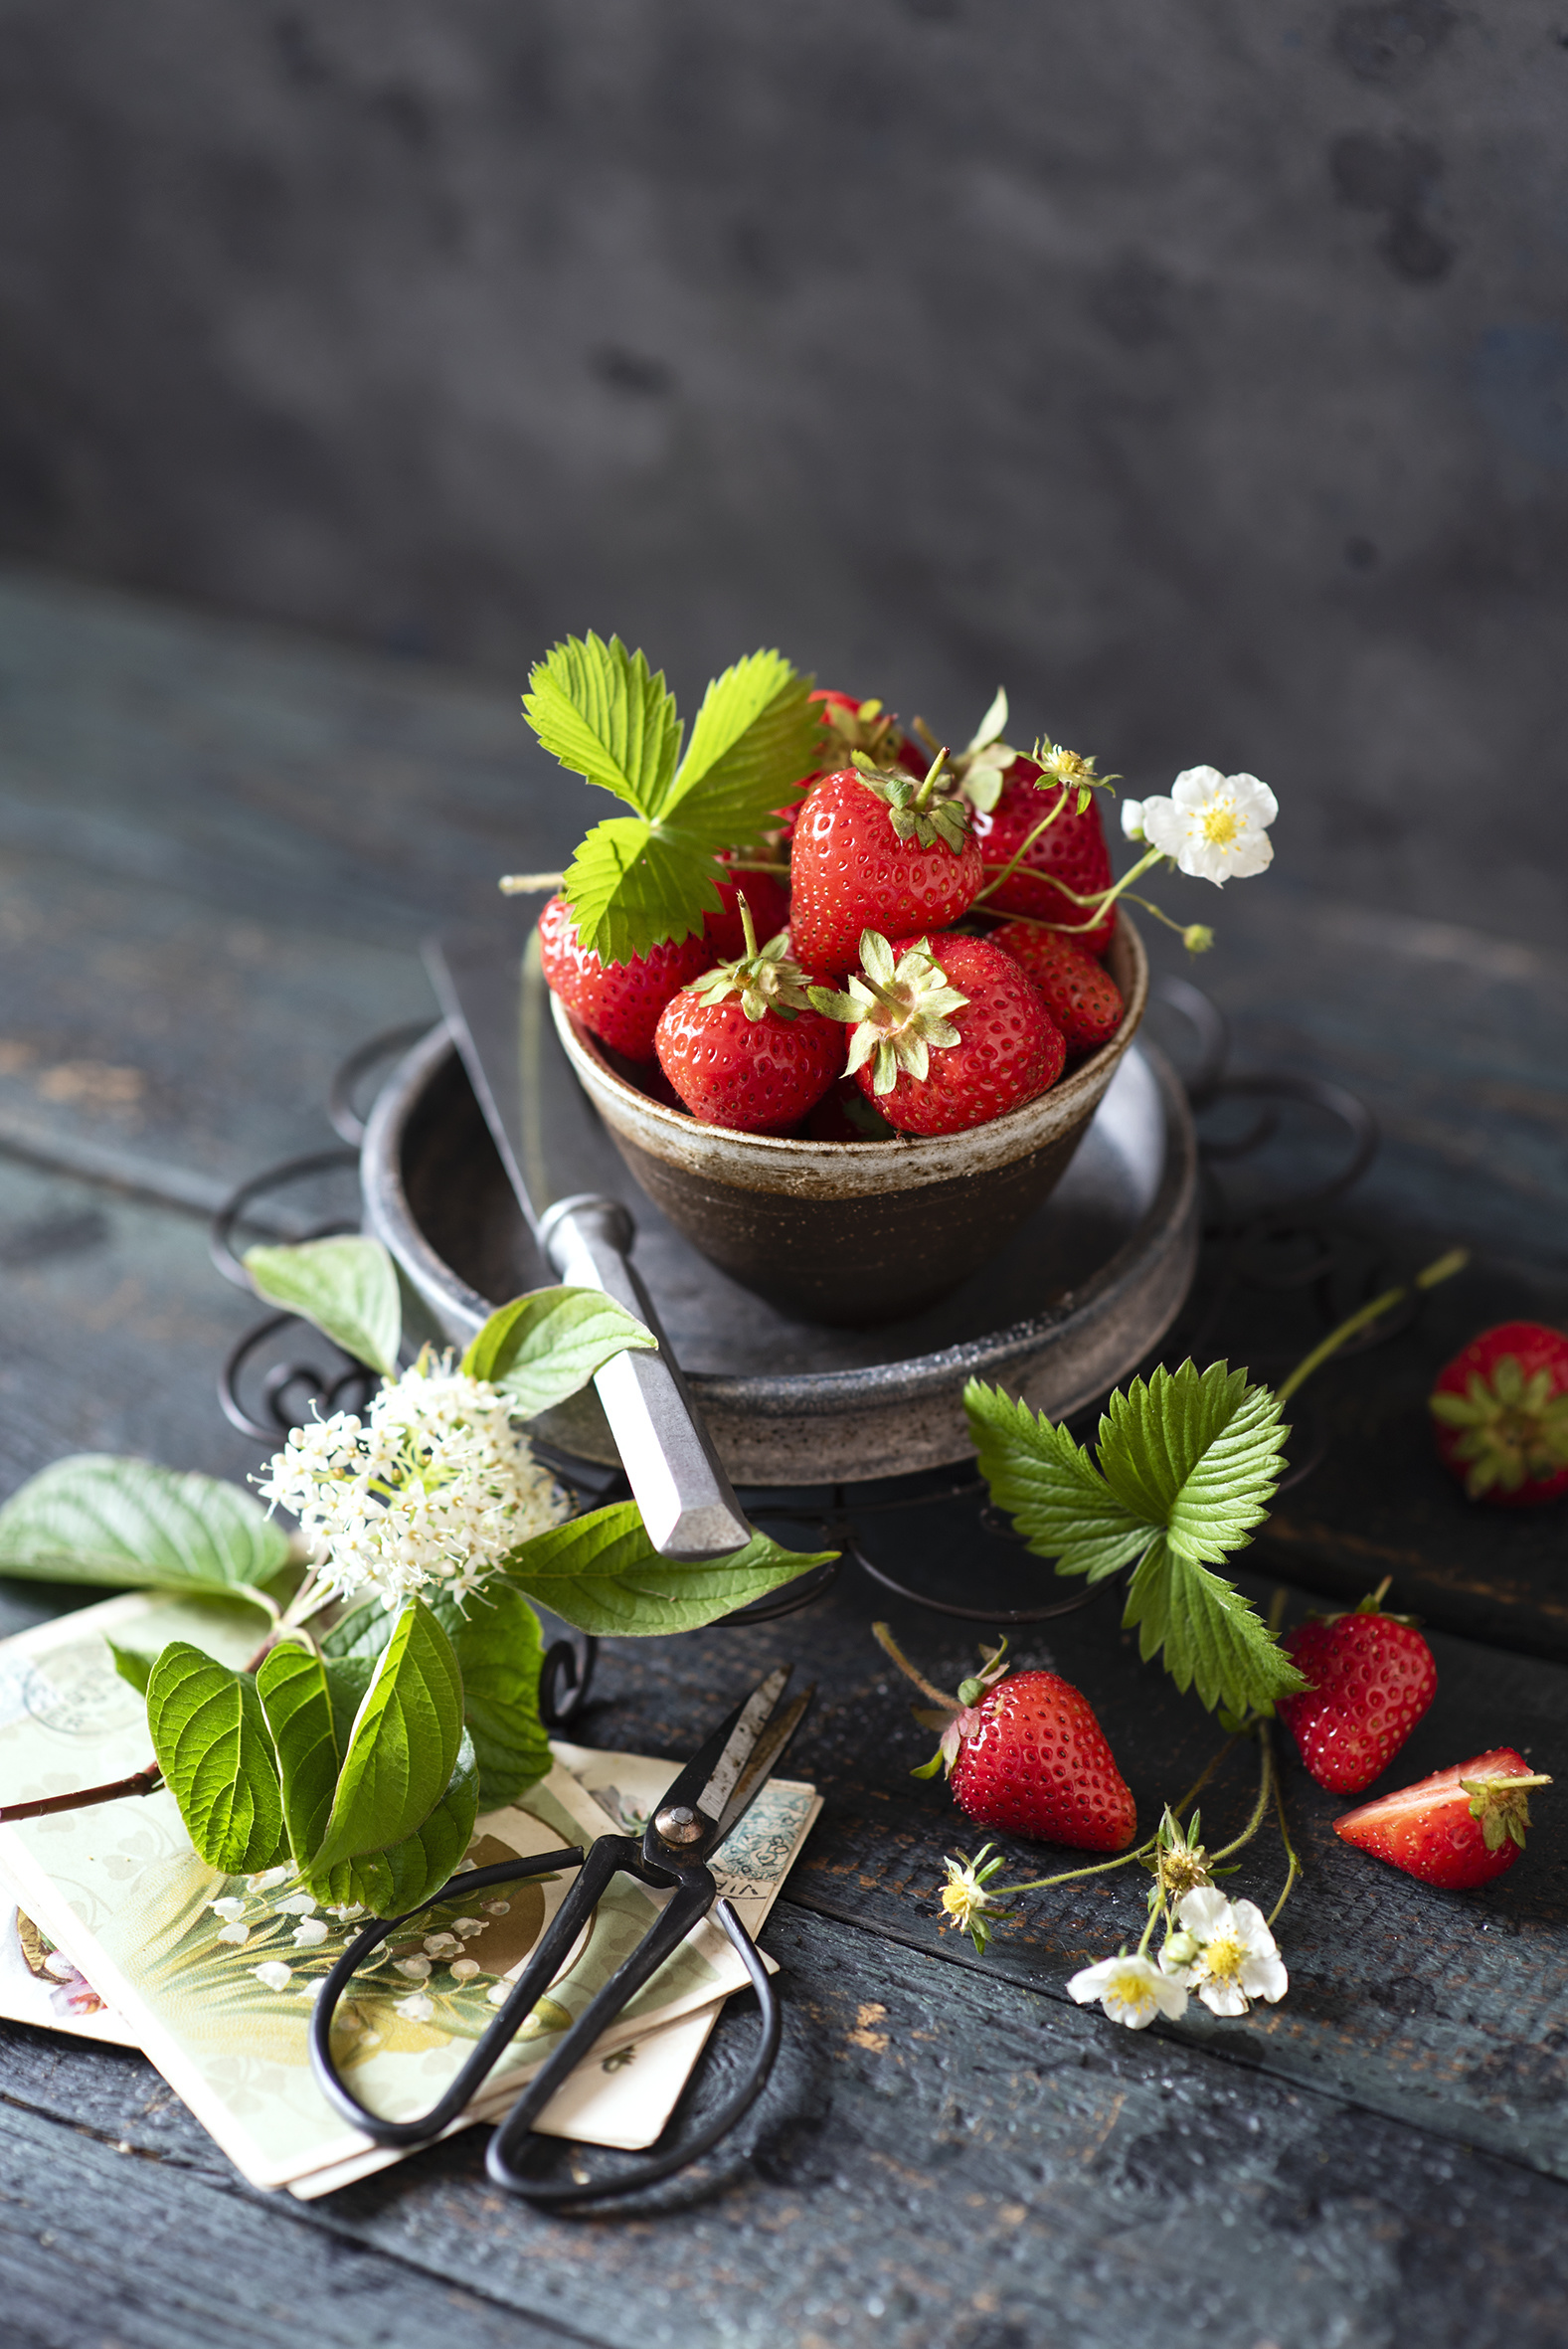 Pictures Leaf Bowl Strawberry Food Wood planks  for Mobile phone Foliage boards